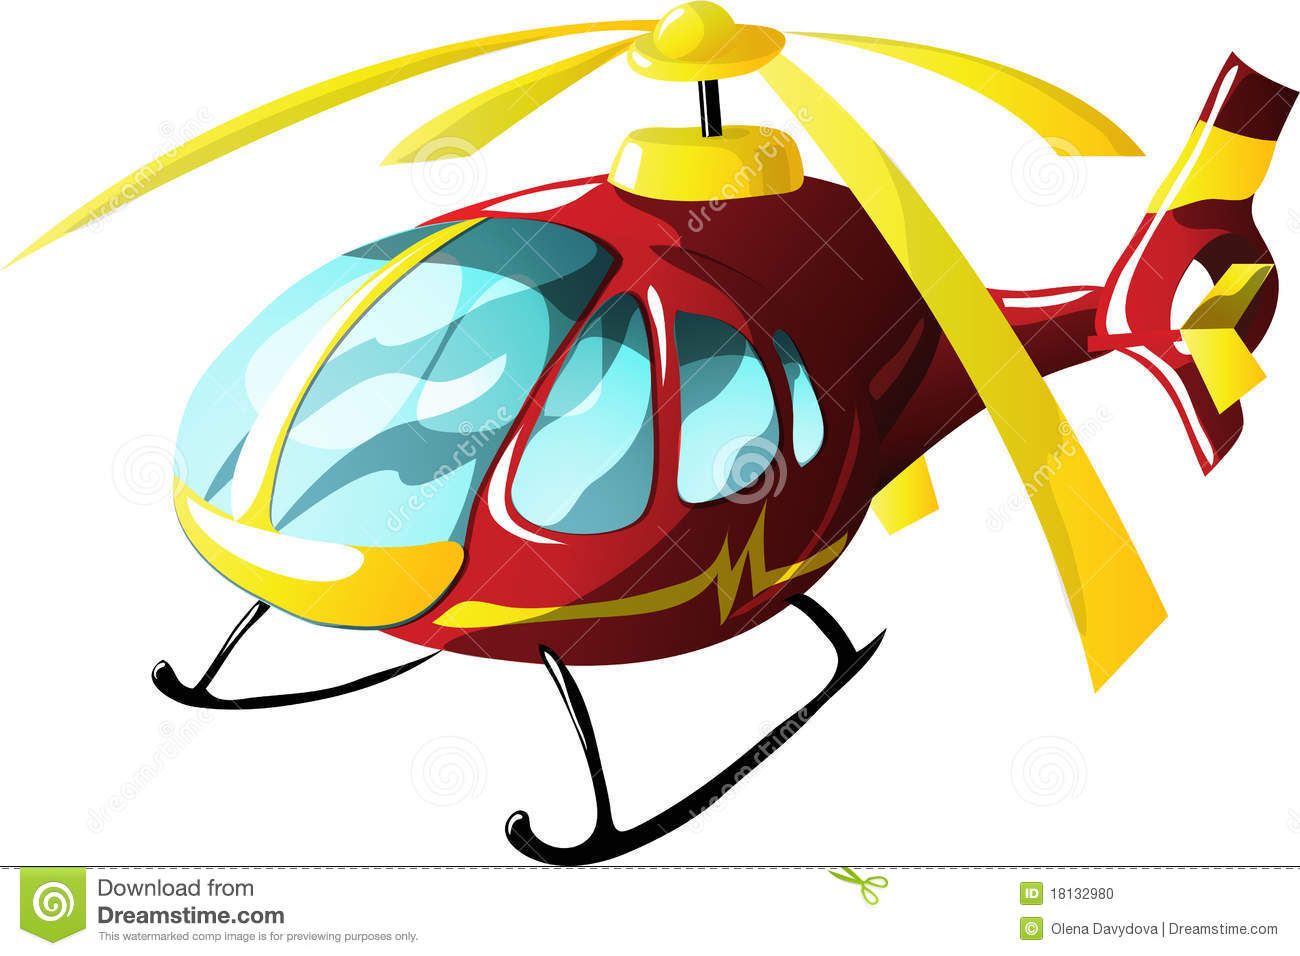 More similar stock images of ` Cartoon ambulance helicopter `